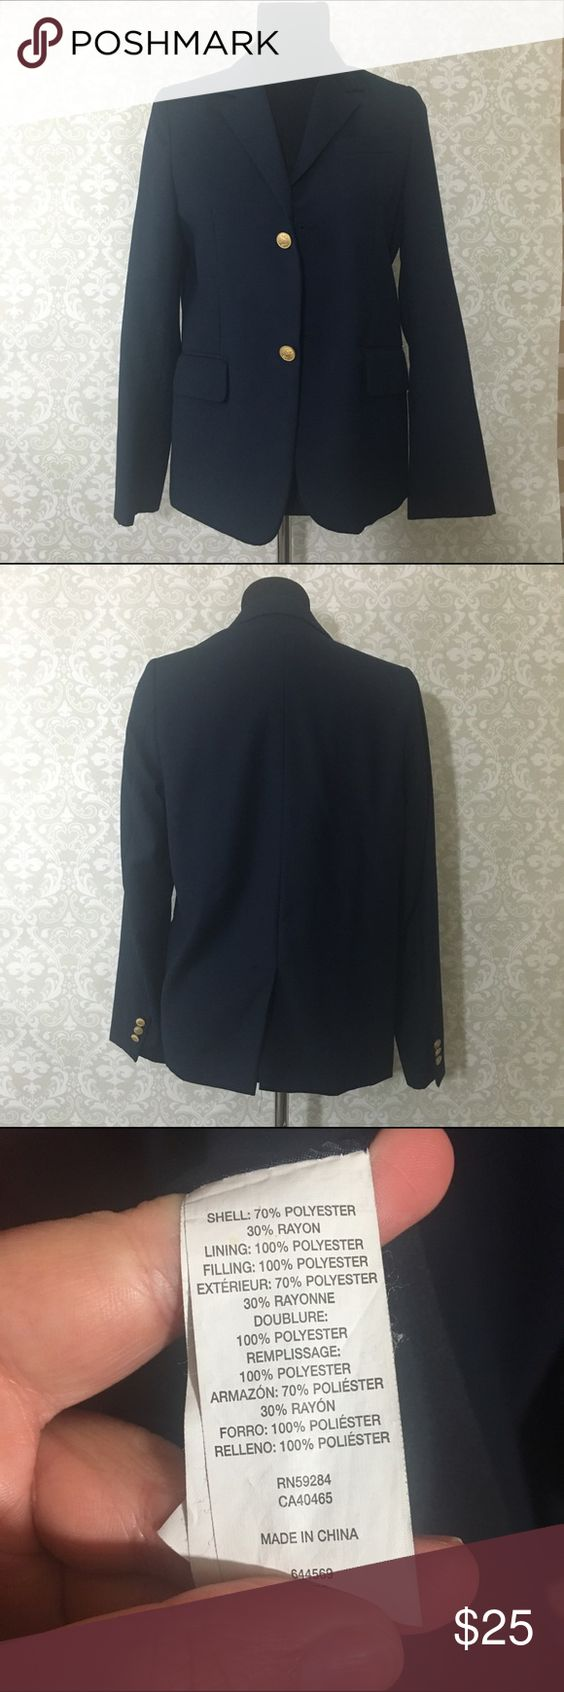 Boys navy blue blazer Fresh from the dry cleaner perfect for school uniforms or holidays, dark navy blue good used condition, no stains or tears. Buttons are gold. Offers welcome, bundle and save! Children's Place Jackets & Coats Blazers